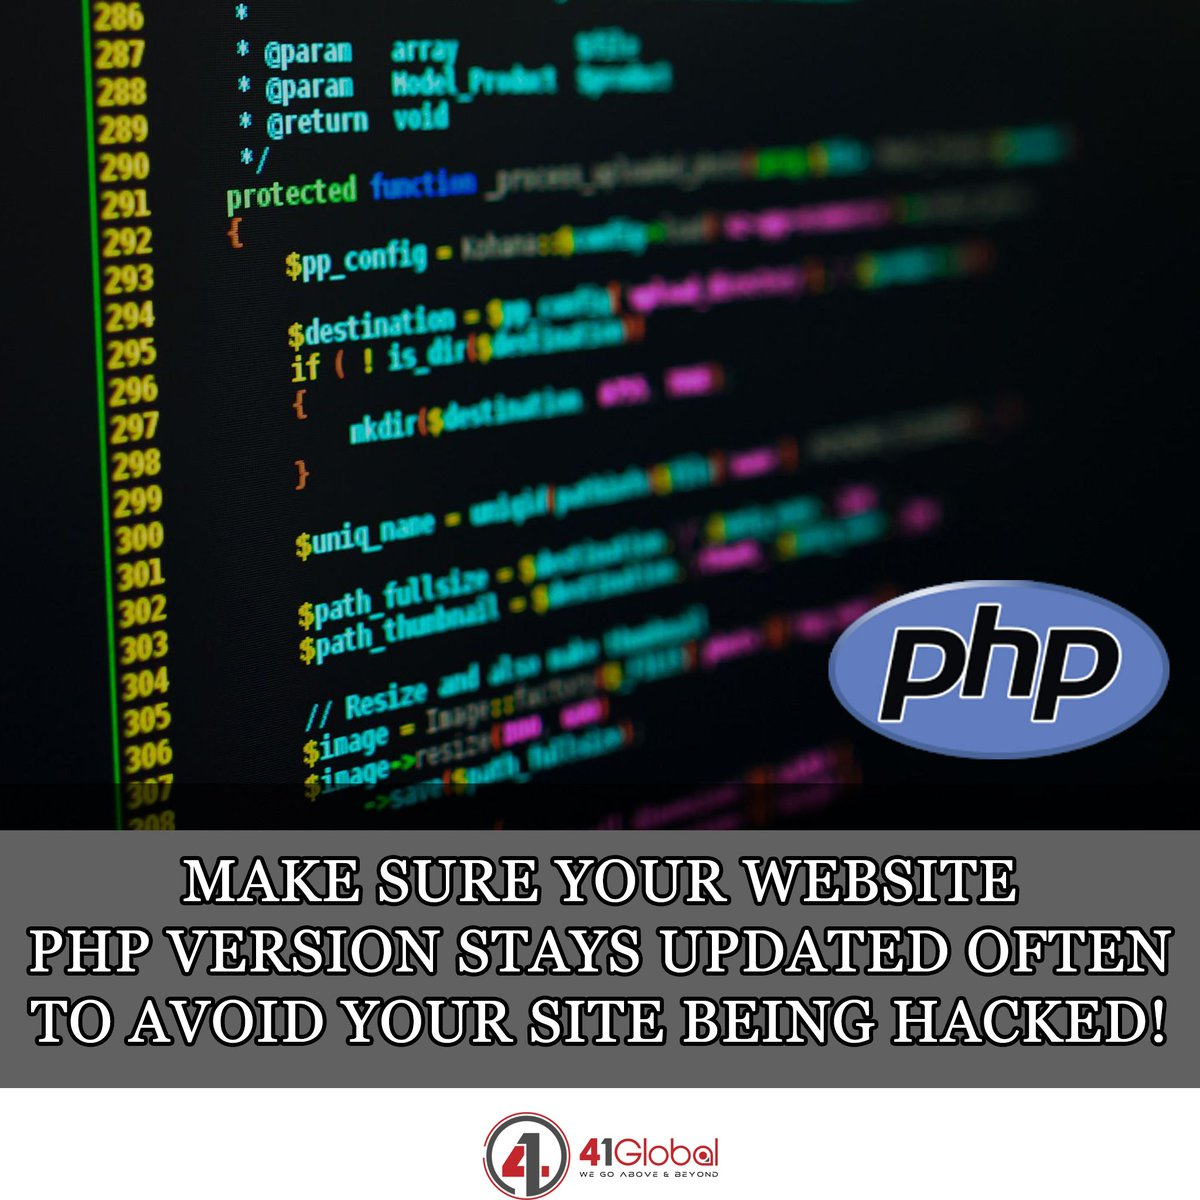 Web Security Tip! Alot of CMS websites such as wordpress & joomla depend on PHP scripting language.  PHP 5.6 & 7.0 support ends after December 2018.   #41Global #php #marketing #website #wordpress #websitedesigner #webdesign  #codingisfun #codinglife #code #techie #tech